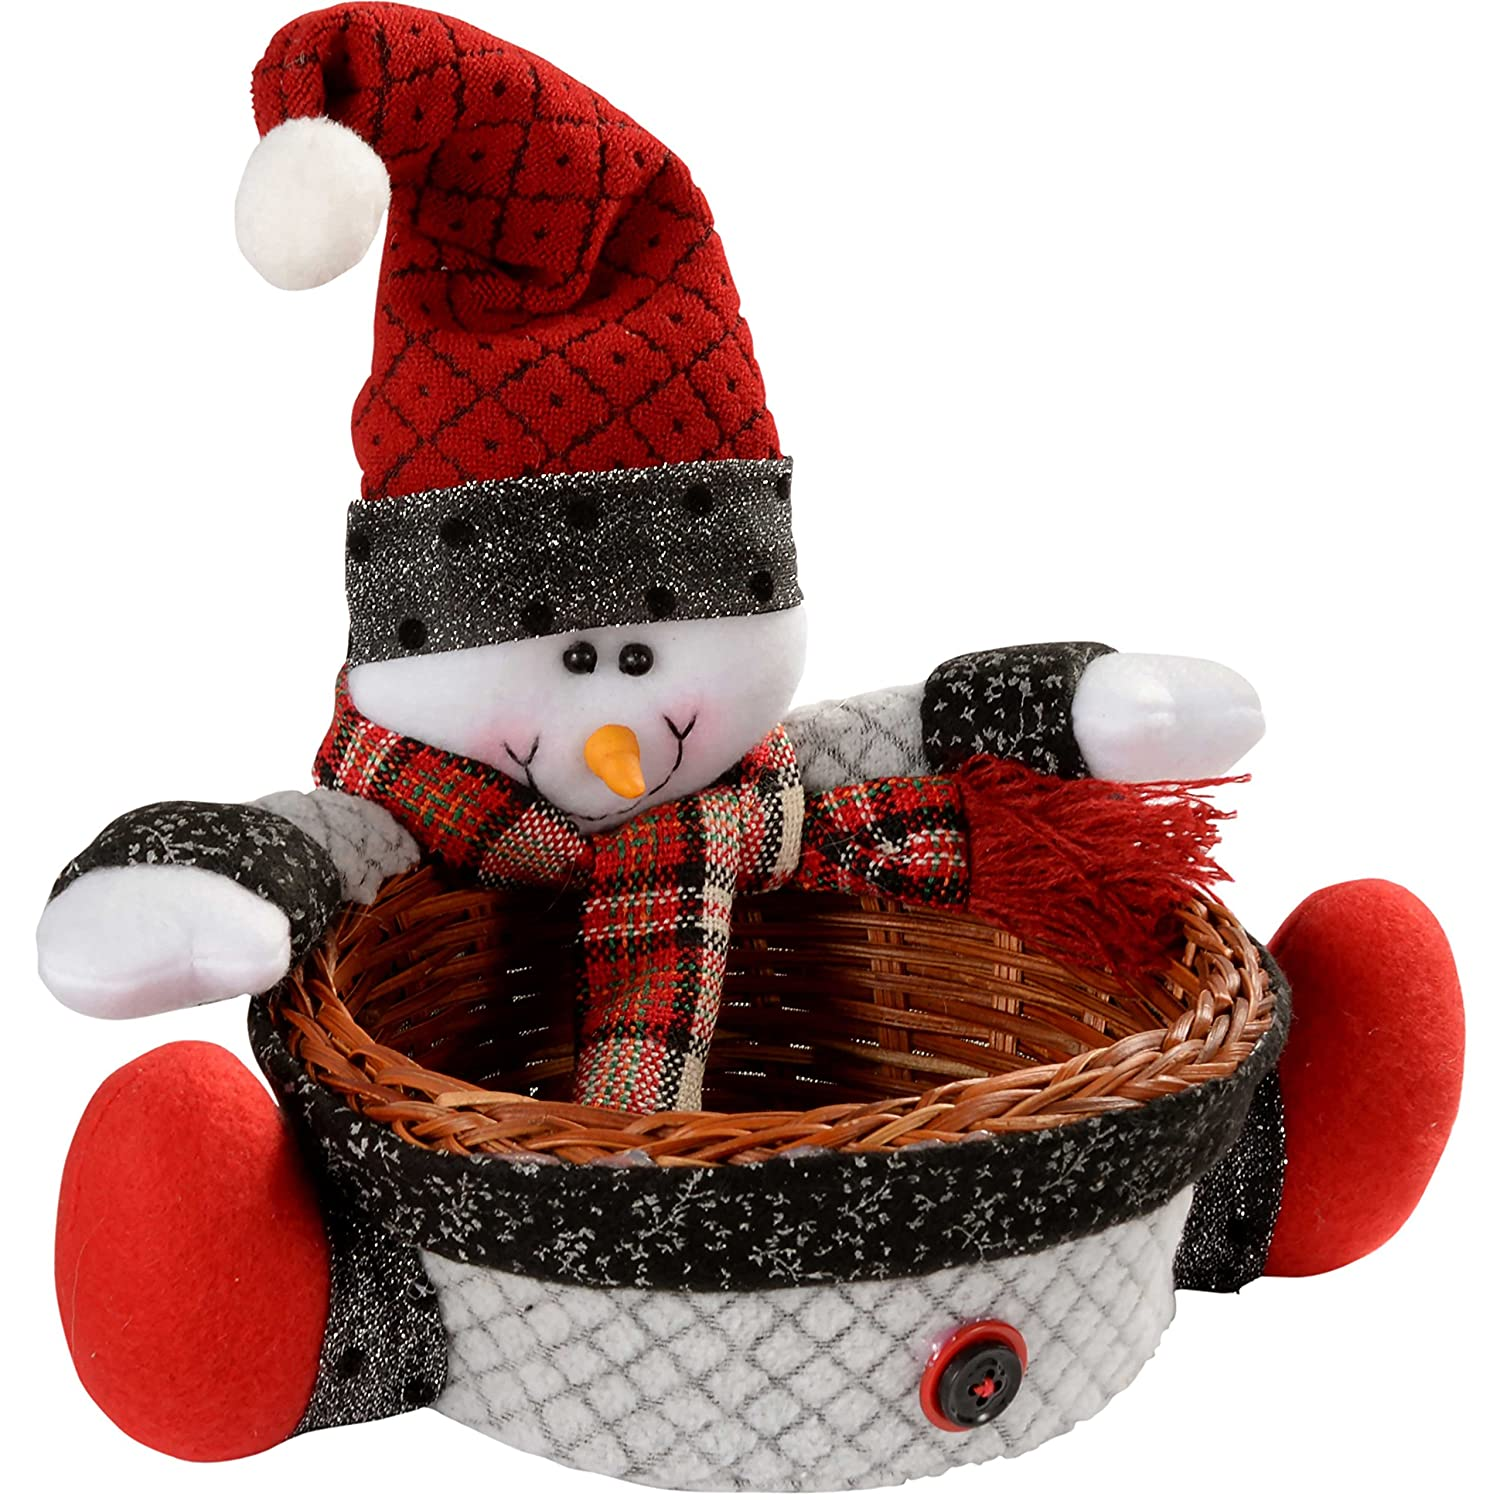 WeRChristmas Snowman Multi-Use Wicker Basket Christmas Decoration Table Decoration, 18 cm - Multi-Colour WRC-3016